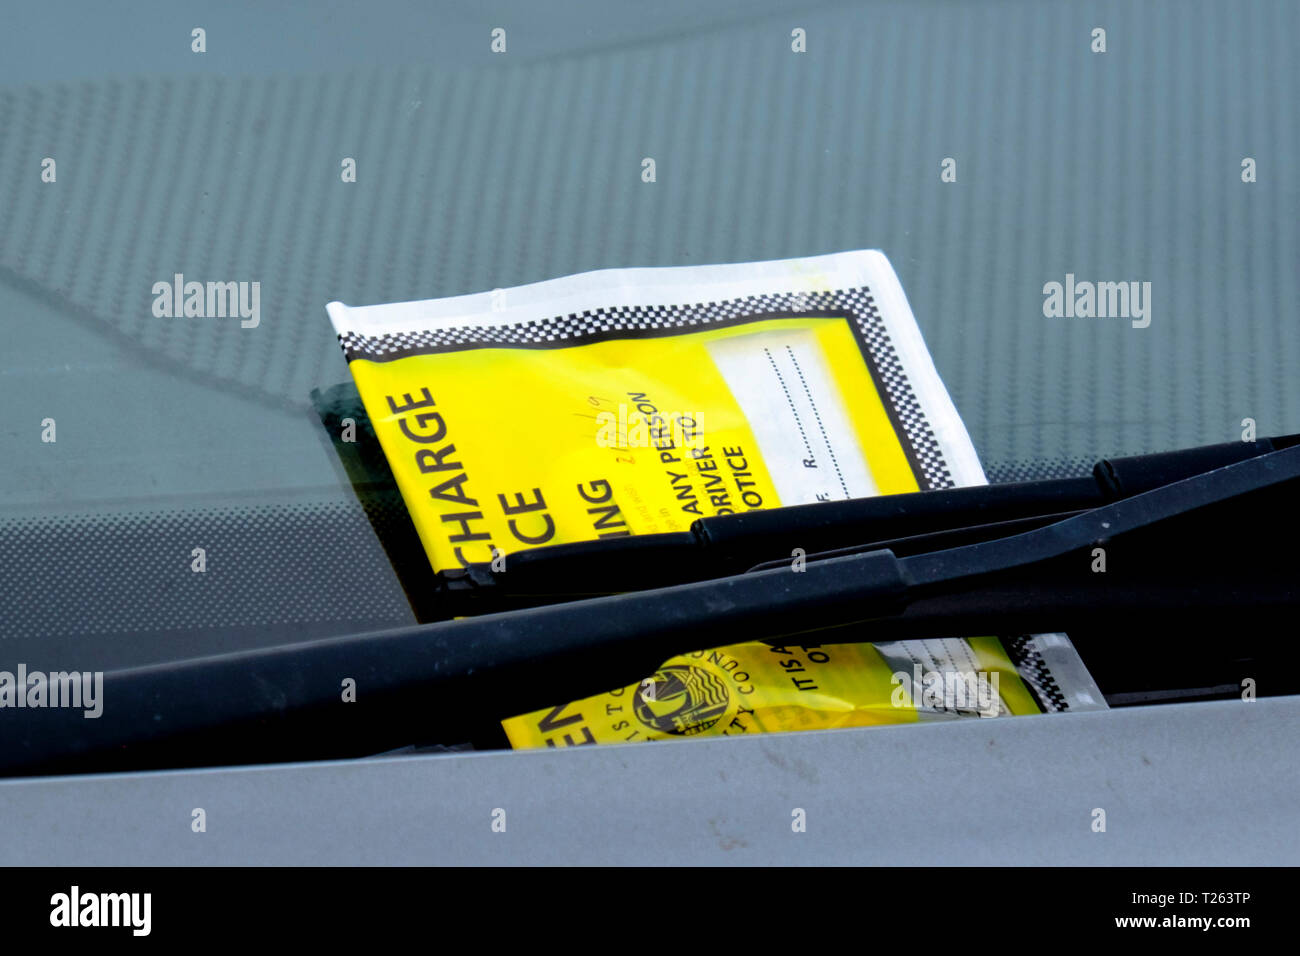 Fixed charge parking notice on a windscreen under a winds screen wiper - Stock Image